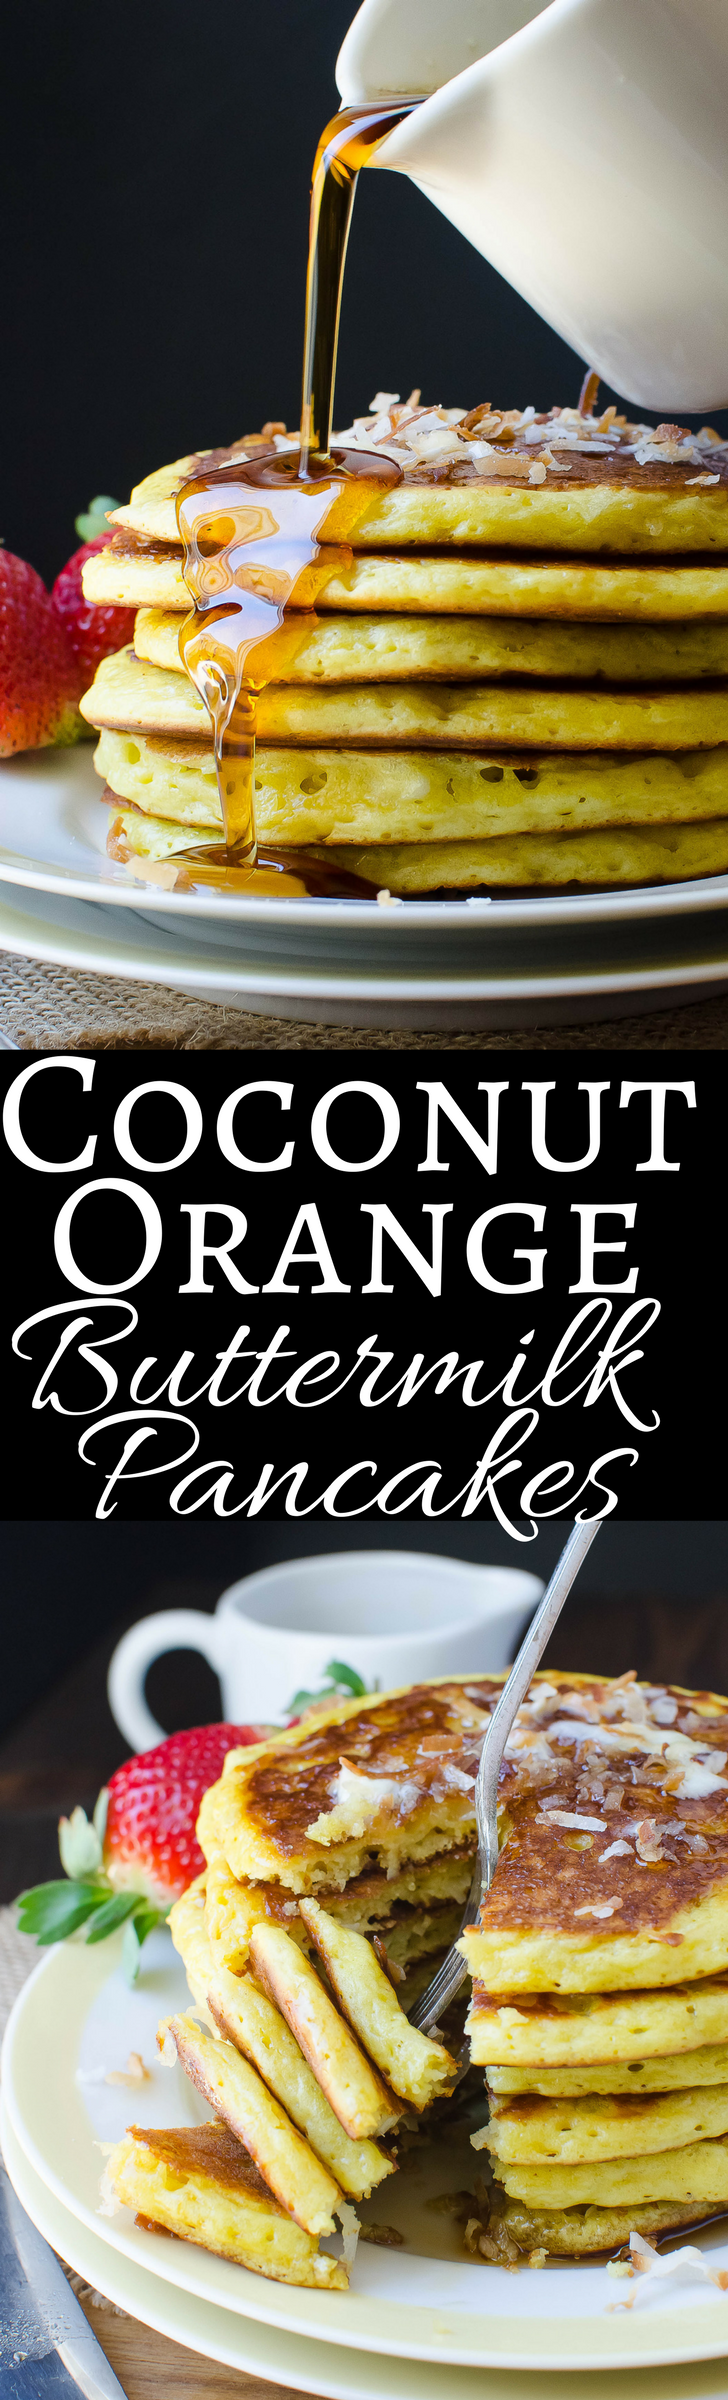 This is the best recipe for buttermilk pancakes!  With the tropical flavors of coconut & orange, it's a delicious way to start the weekend!